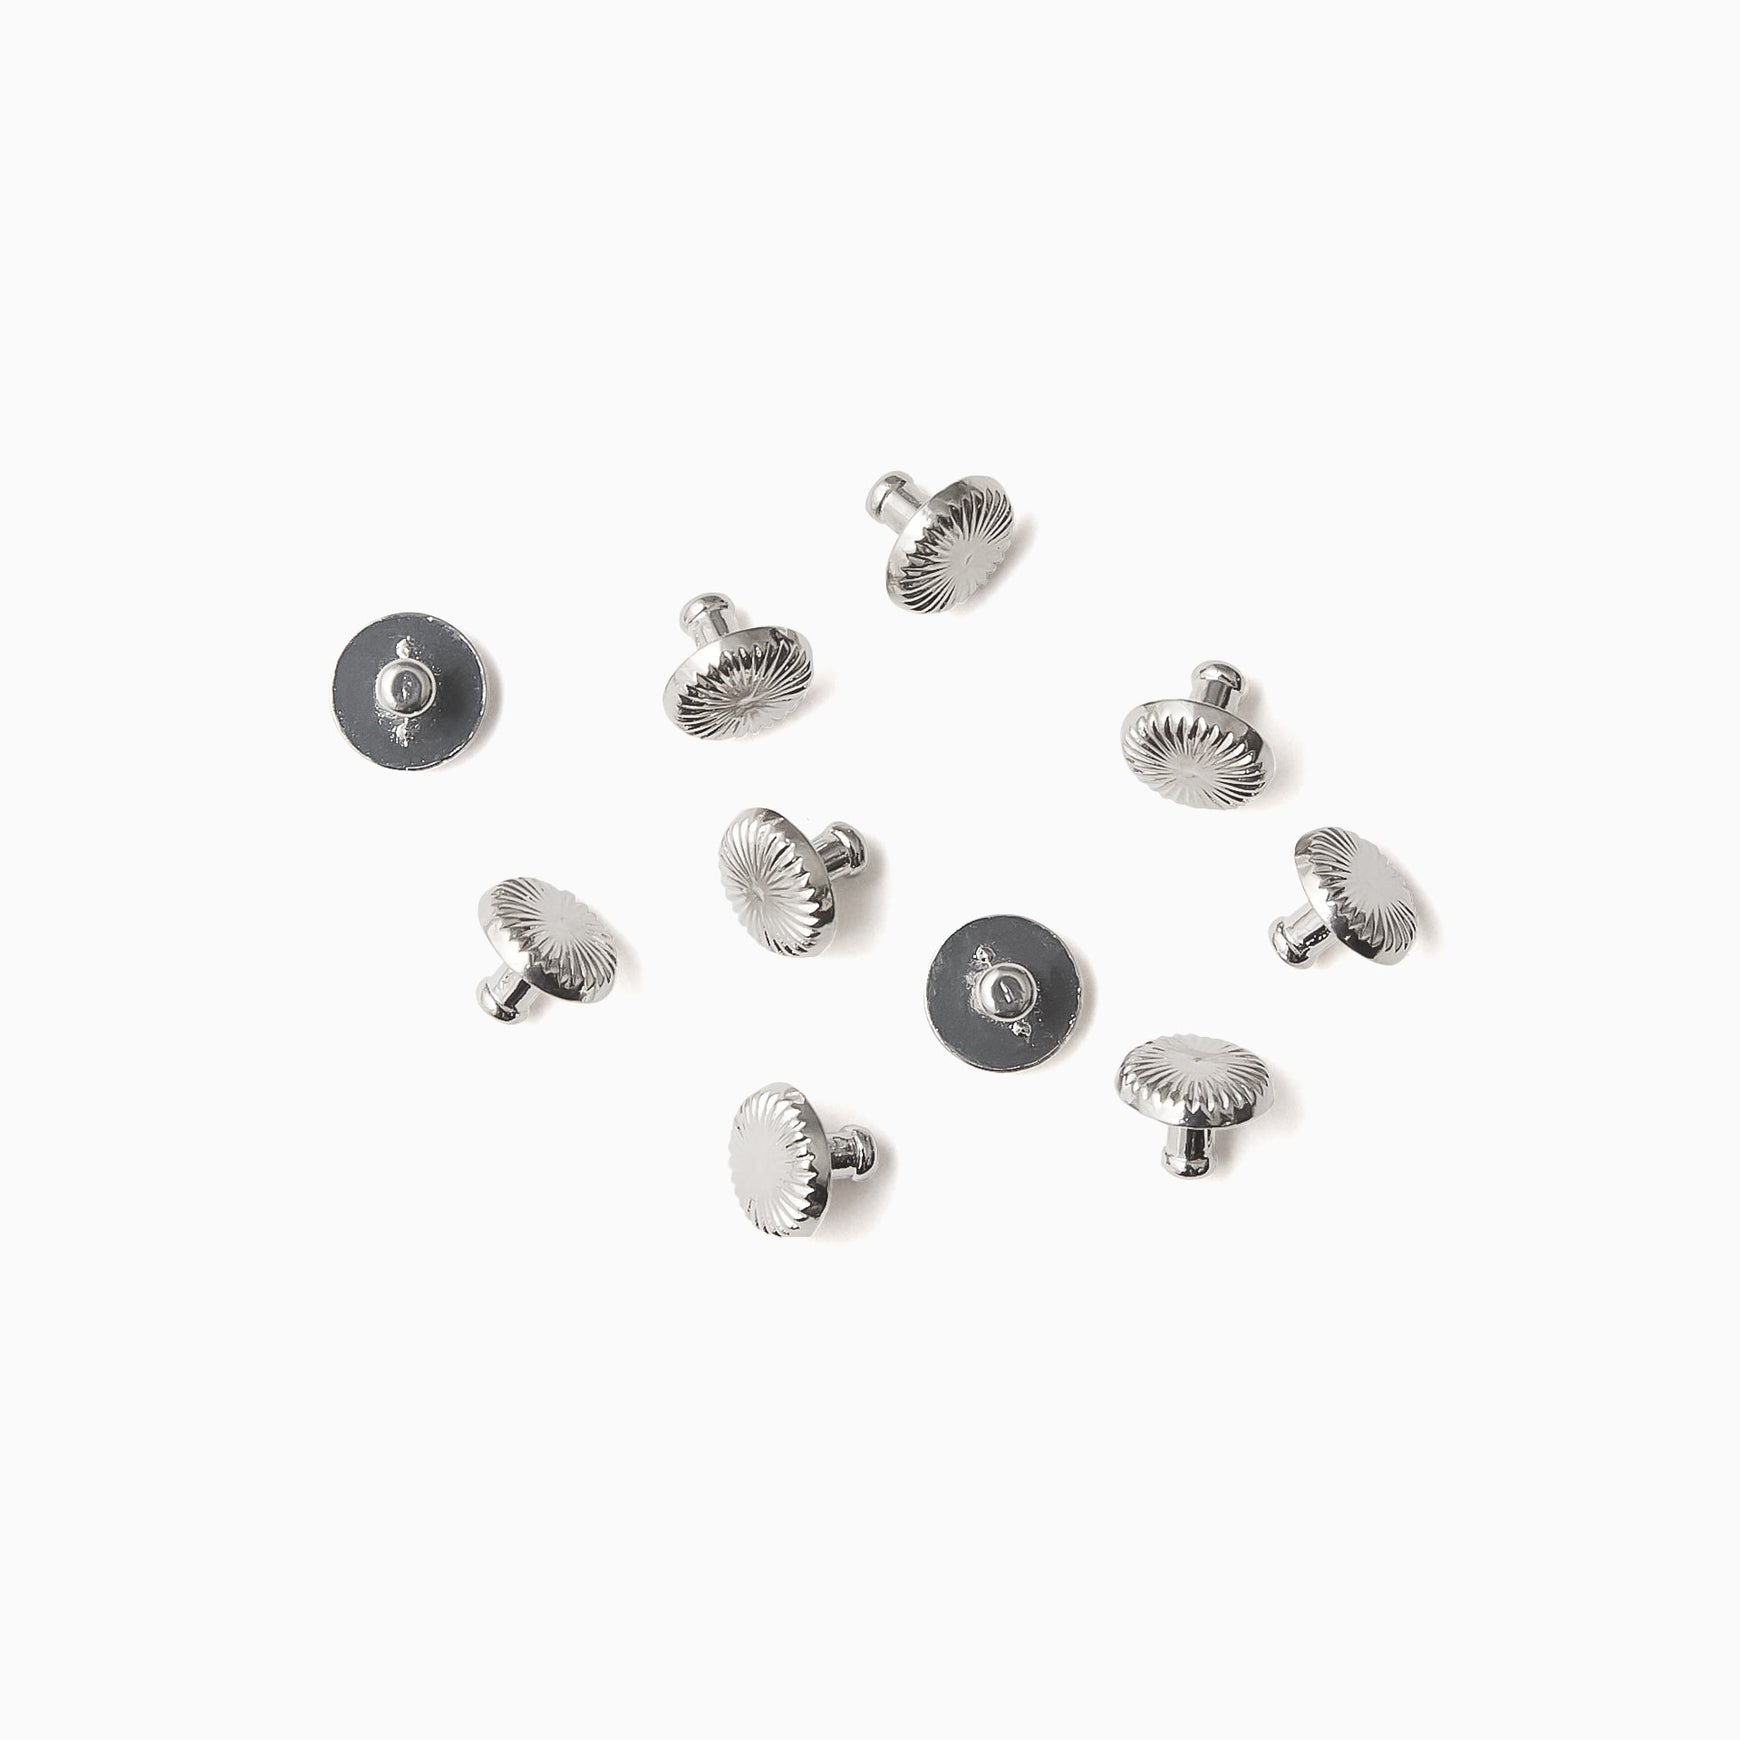 TYPE-1 Top Dots 10 Pieces (Silver)